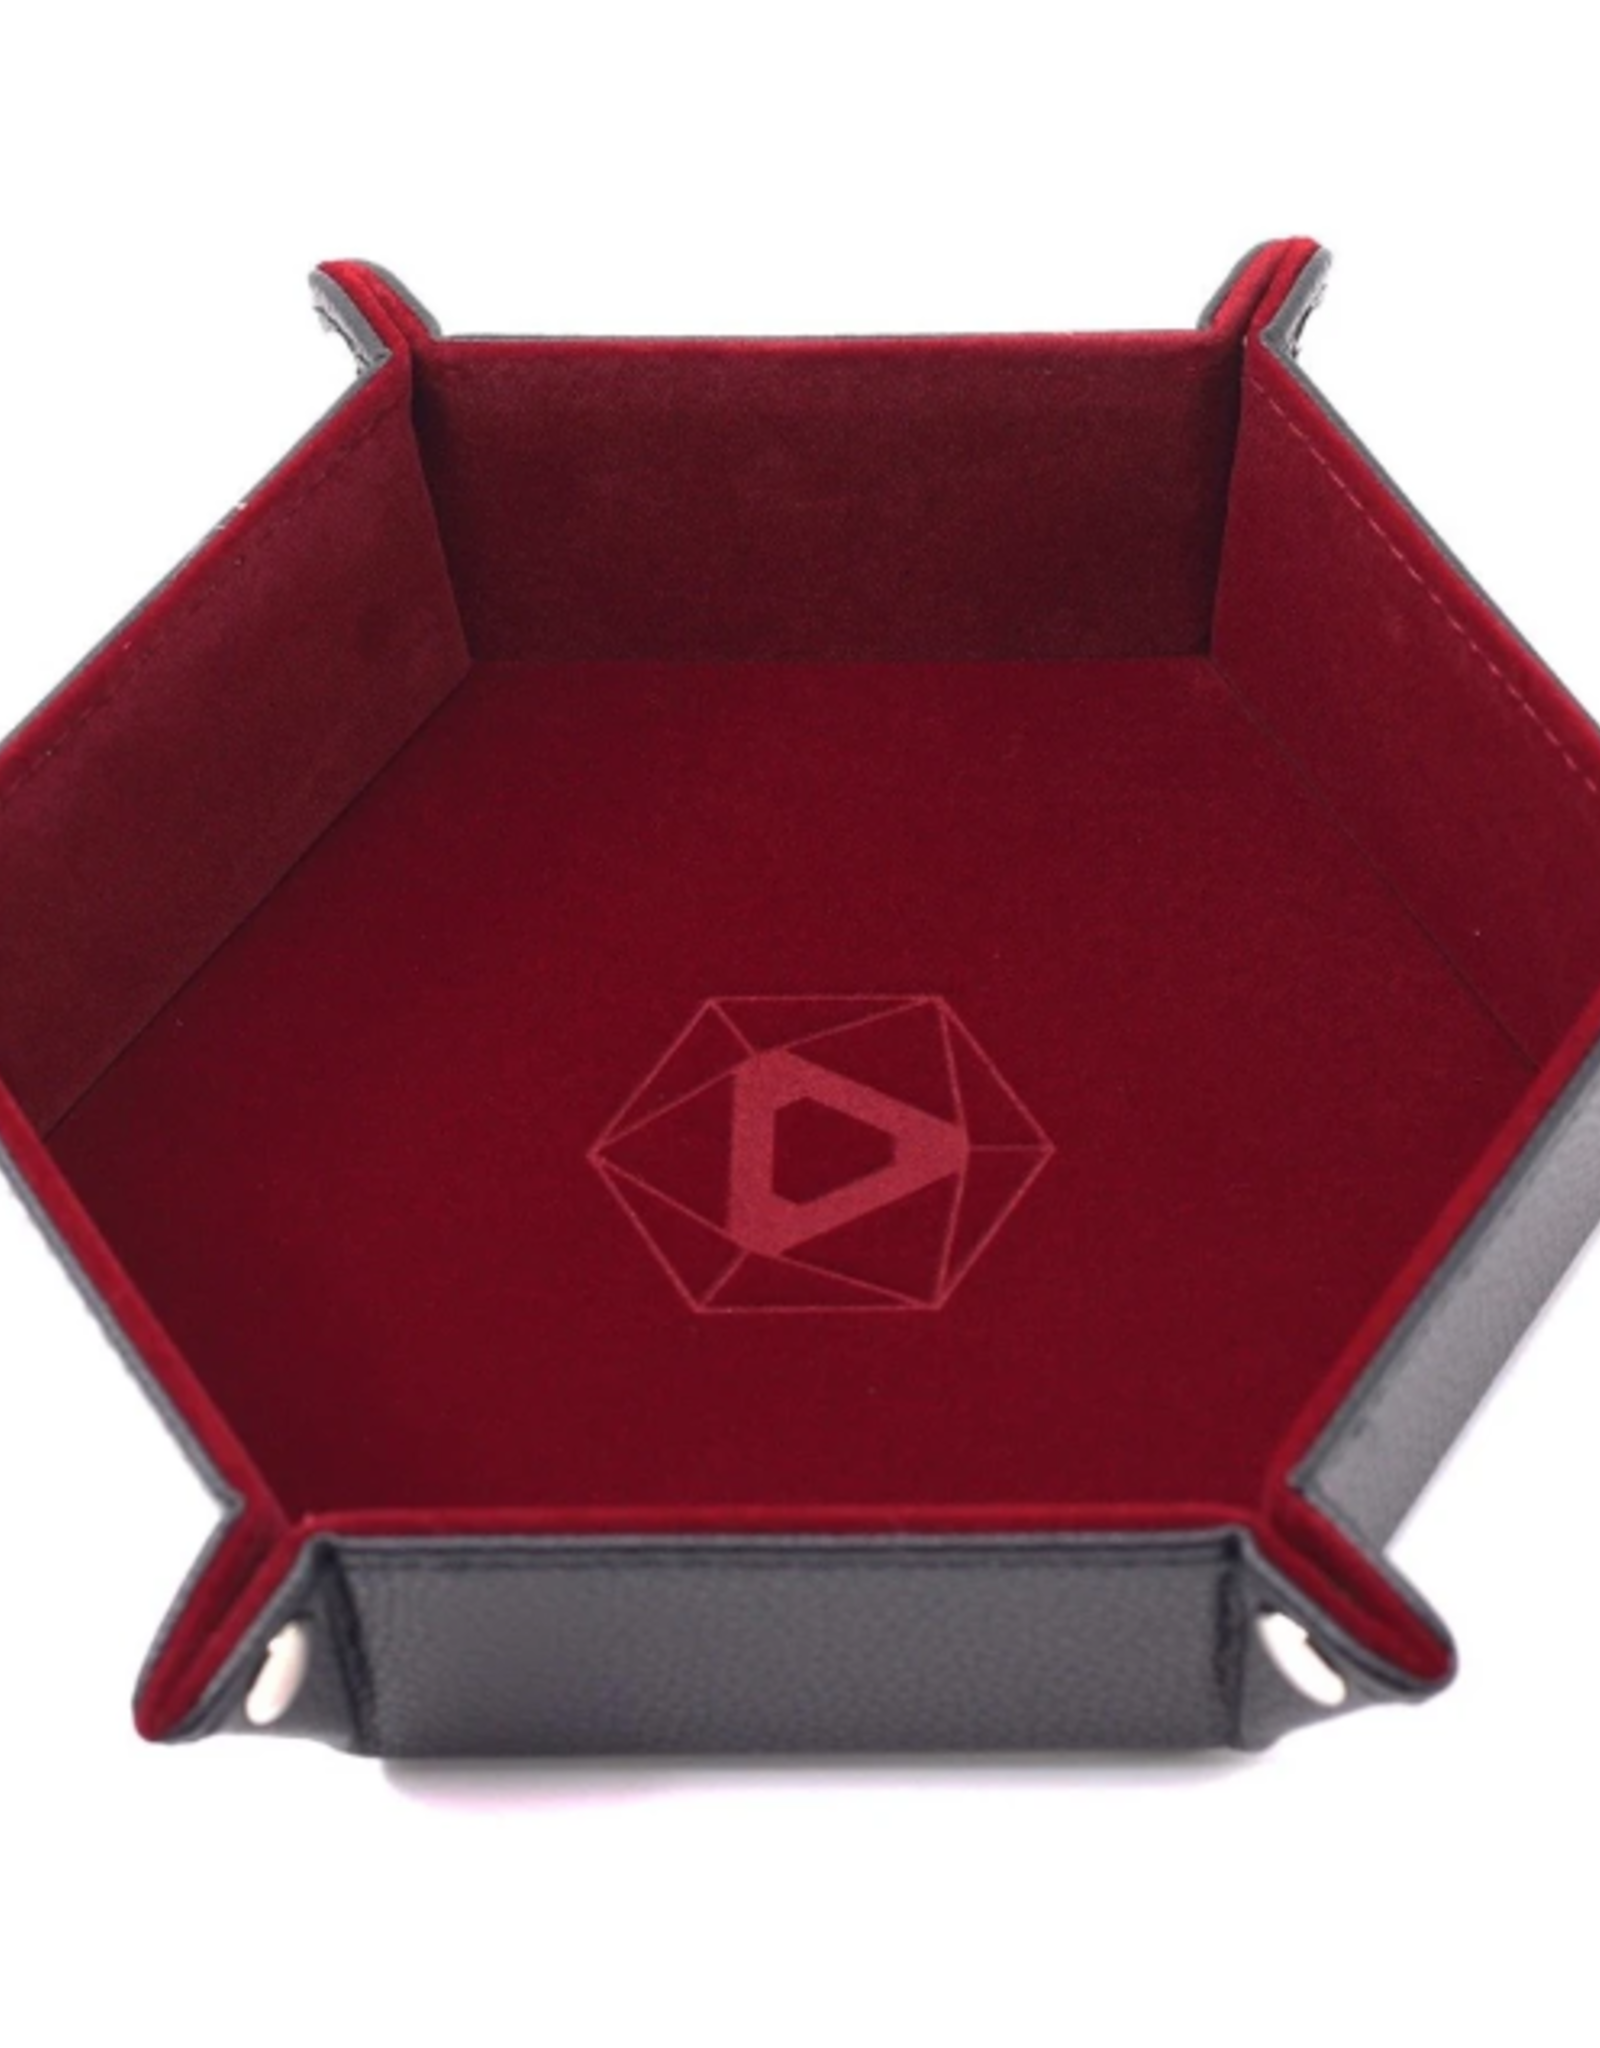 Die Hard Dice Folding Hex Tray Red Velvet